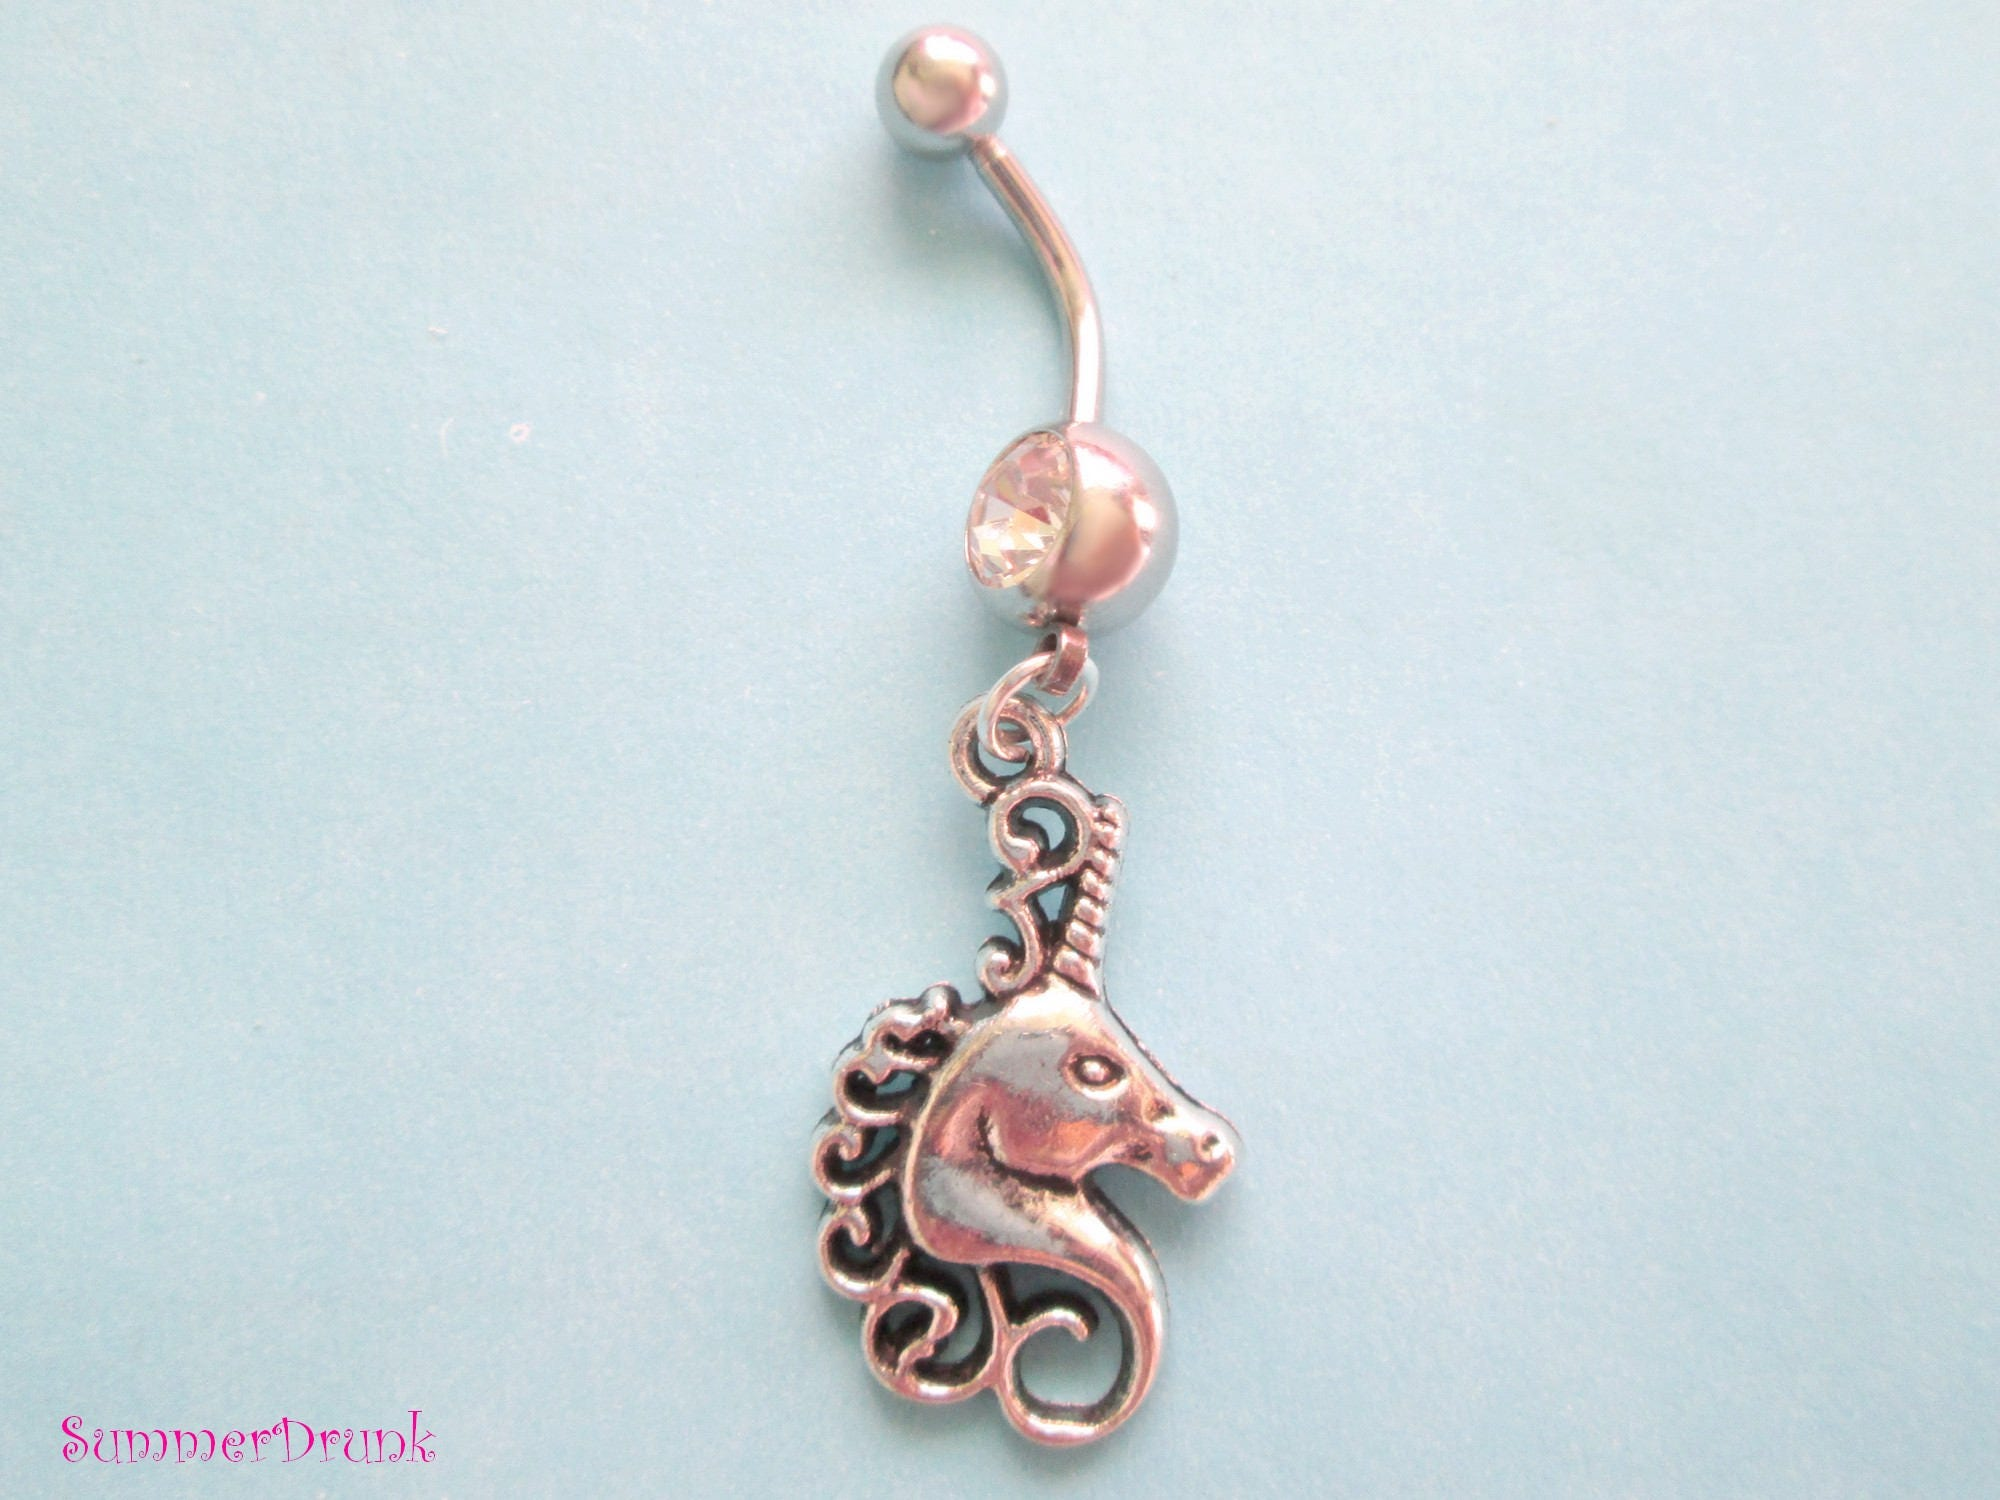 Belly Button Ring Unicorn Belly Ring Navel Ring Belly Button Rings Belly Piercing Dangle Belly Ring Boho Belly Ring Unicorn Belly Ring